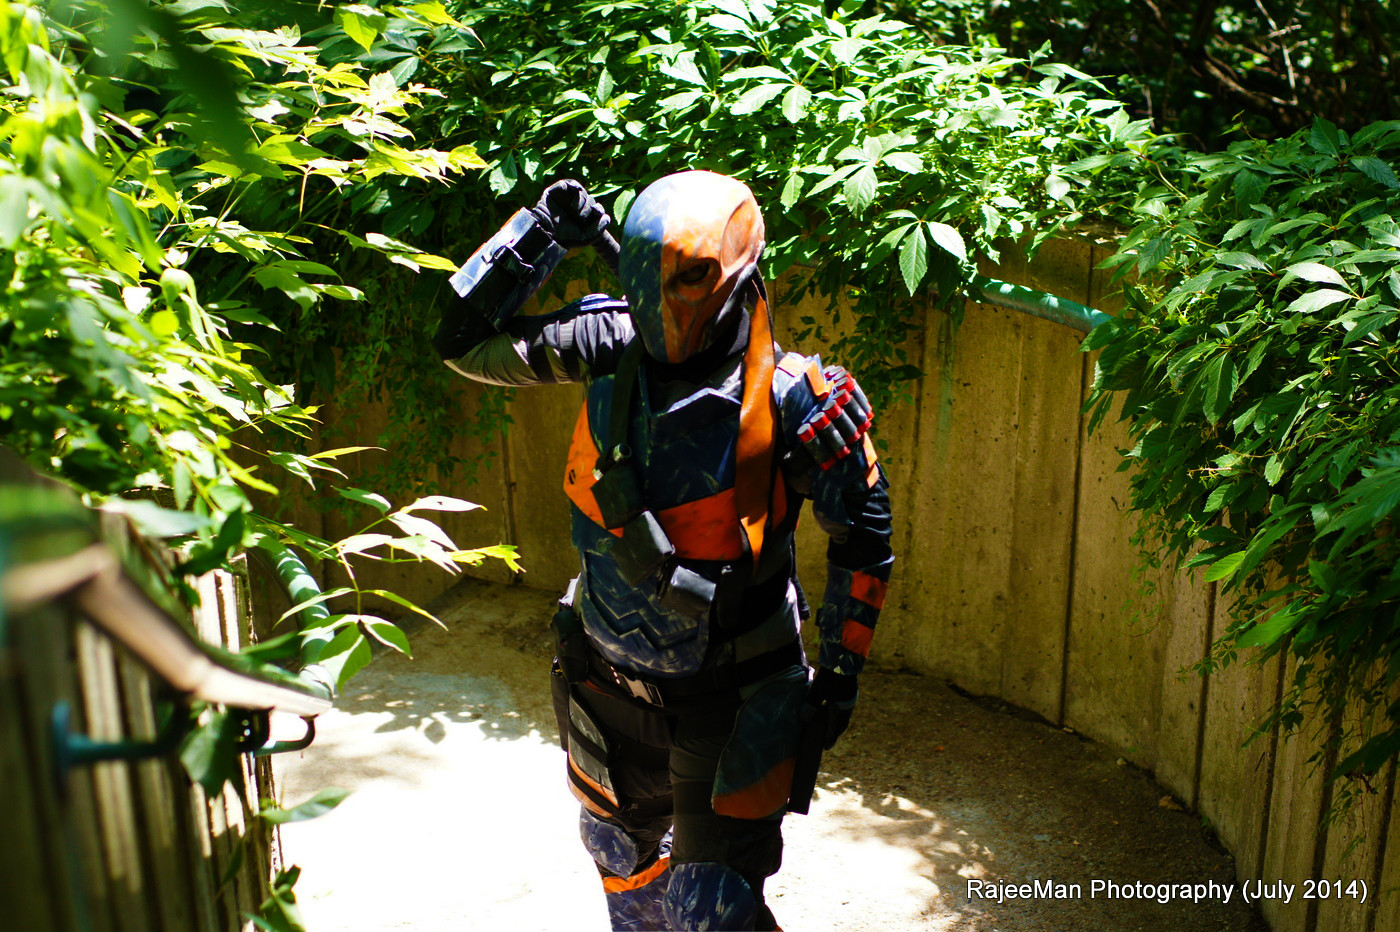 Deathstroke Photo by Rajeeman Photography